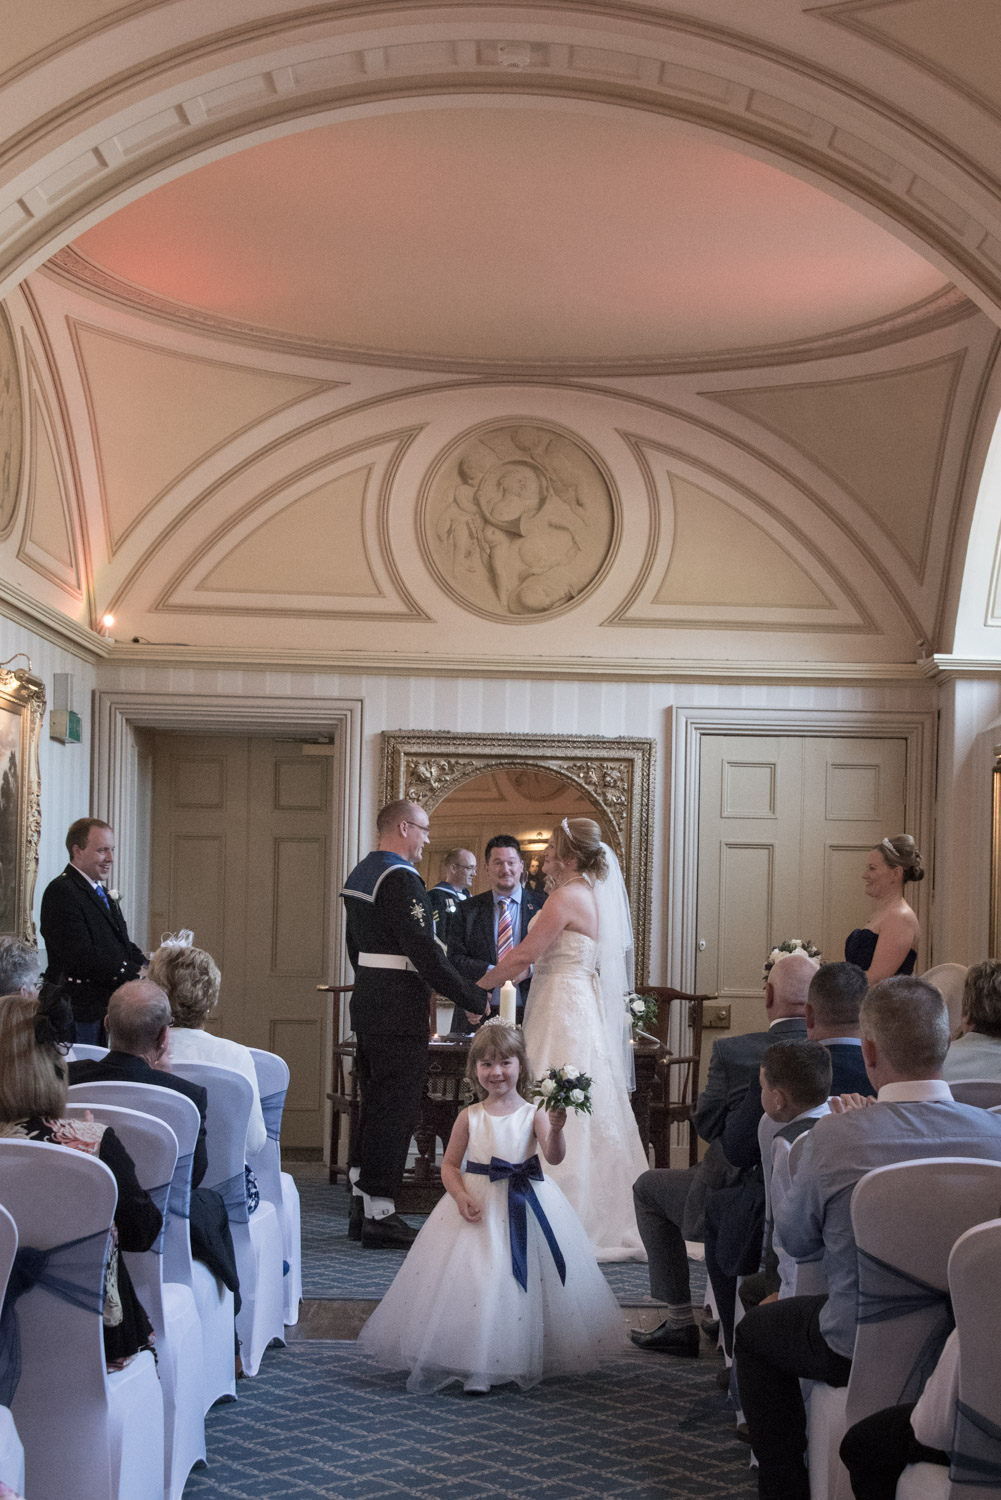 Weddings At Balbirnie House - ceremony in the long gallery